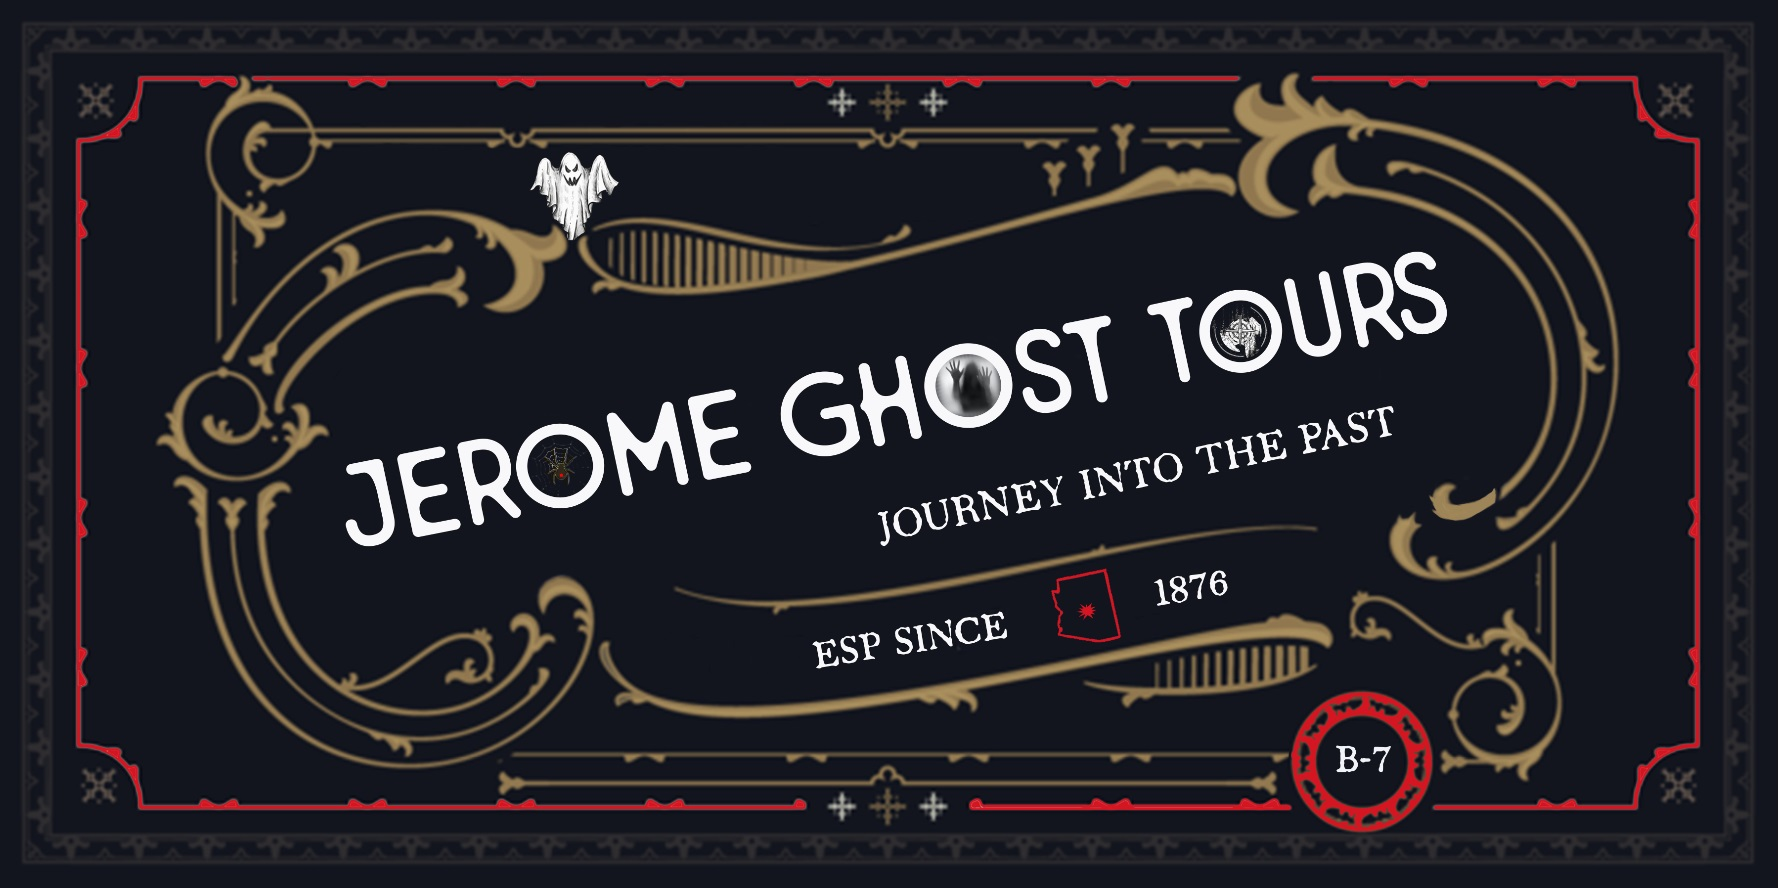 Best-Ghost-Tour-Jerome